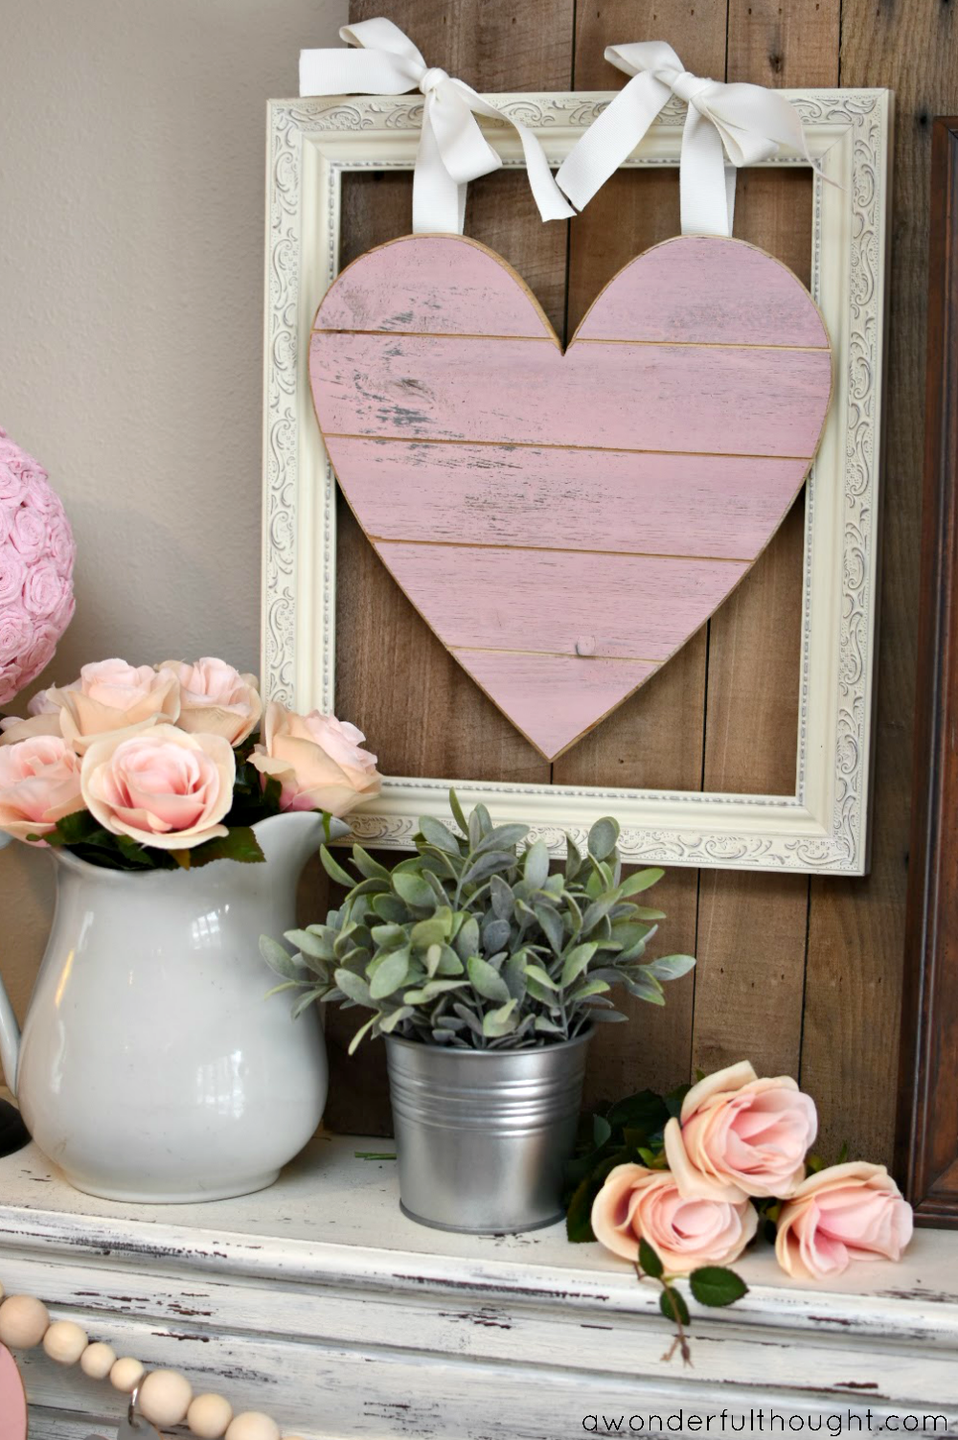 """<p>A framed heart made of shiplap and vases of faux flowers serve as the focal point for this beautiful Valentine's Day mantel display.</p><p><strong>Get the tutorial at <a href=""""http://awonderfulthought.com/pretty-pink-gray-valentines-day-mantel/"""" rel=""""nofollow noopener"""" target=""""_blank"""" data-ylk=""""slk:A Wonderful Thought"""" class=""""link rapid-noclick-resp"""">A Wonderful Thought</a>.</strong></p><p><strong><a class=""""link rapid-noclick-resp"""" href=""""https://www.amazon.com/slp/wood-heart-wall-decor/uv2r7uzb6zwxo92?tag=syn-yahoo-20&ascsubtag=%5Bartid%7C10050.g.2971%5Bsrc%7Cyahoo-us"""" rel=""""nofollow noopener"""" target=""""_blank"""" data-ylk=""""slk:SHOP HEART DECOR"""">SHOP HEART DECOR</a><br></strong></p>"""